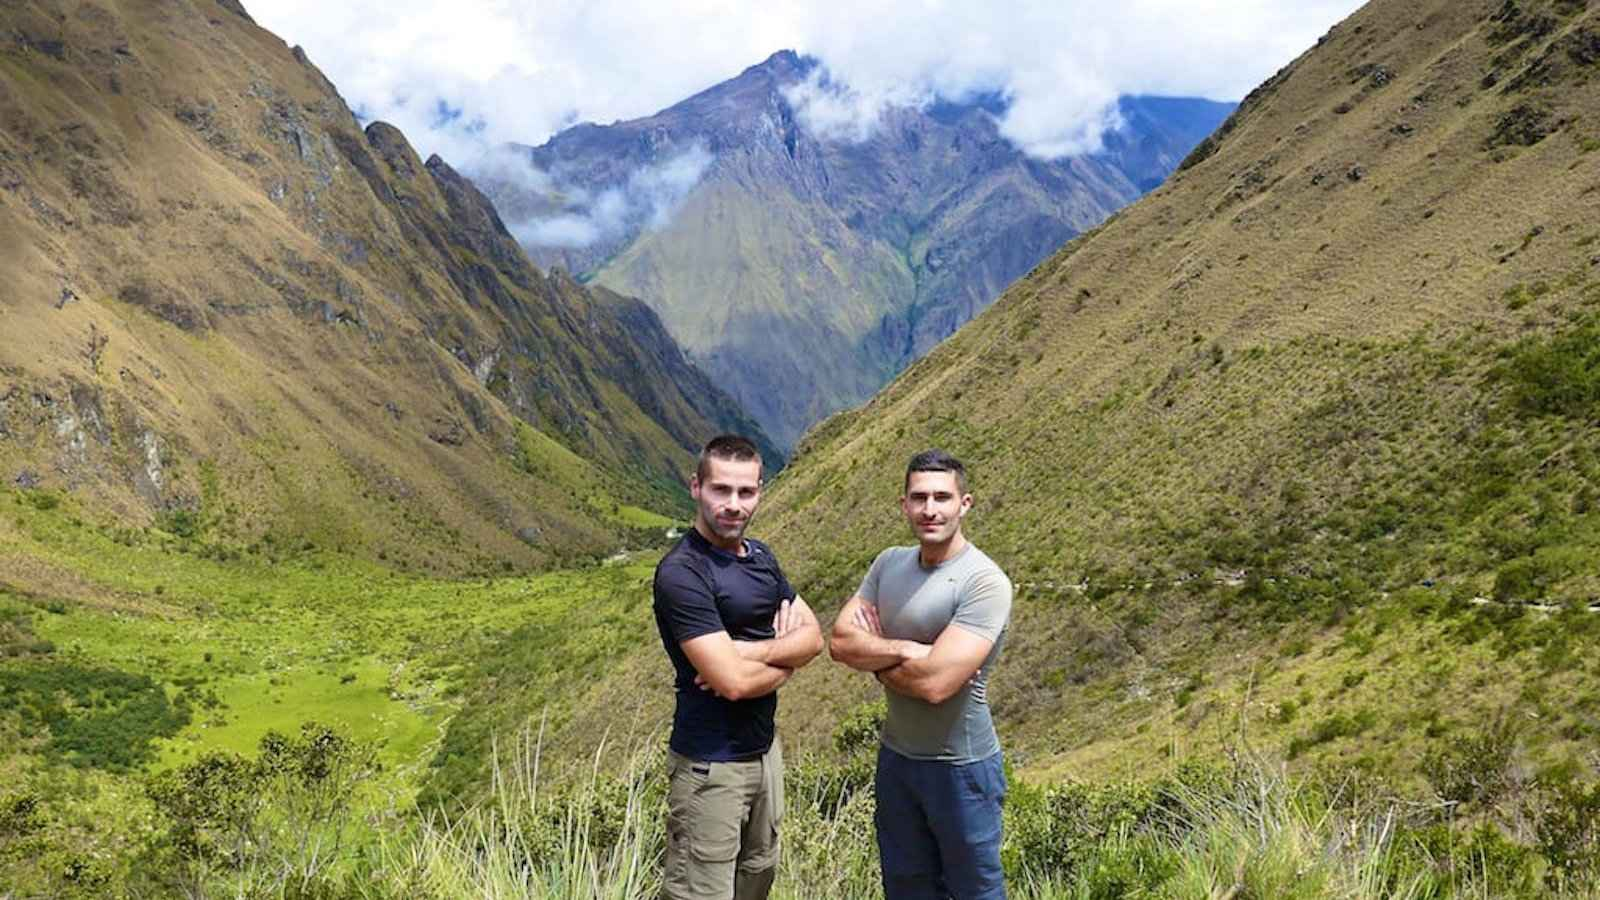 Always trust your gut reaction one of our top safety tips for gay couples traveling